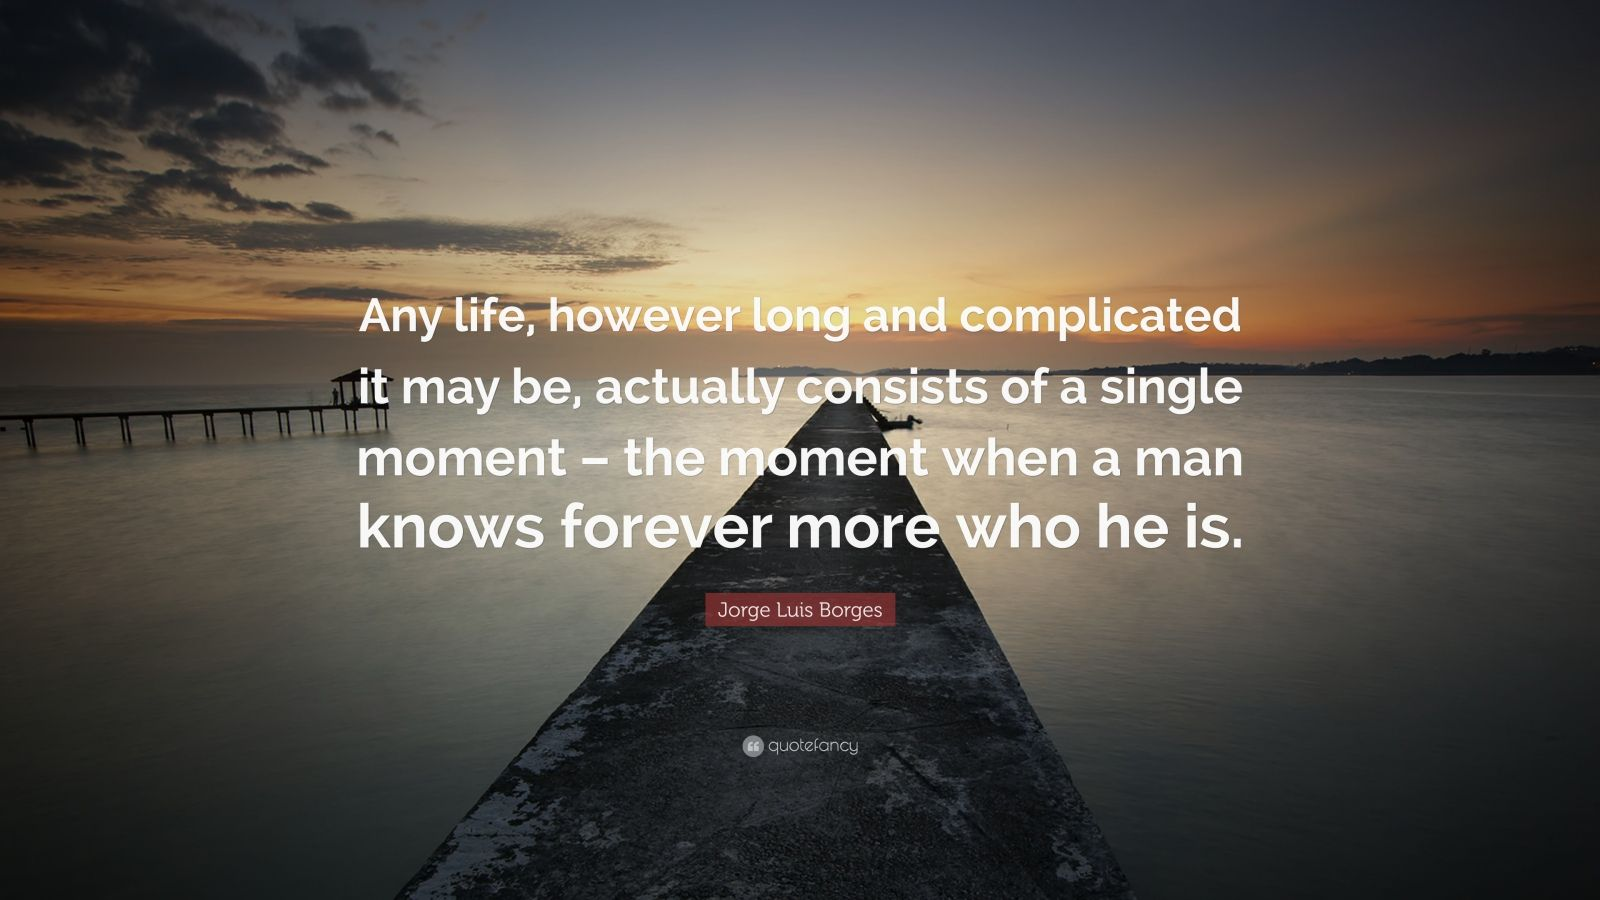 """Jorge Luis Borges Quote: """"Any life, however long and complicated it may be, actually consists of a single moment – the moment when a man knows forever more who he is."""""""